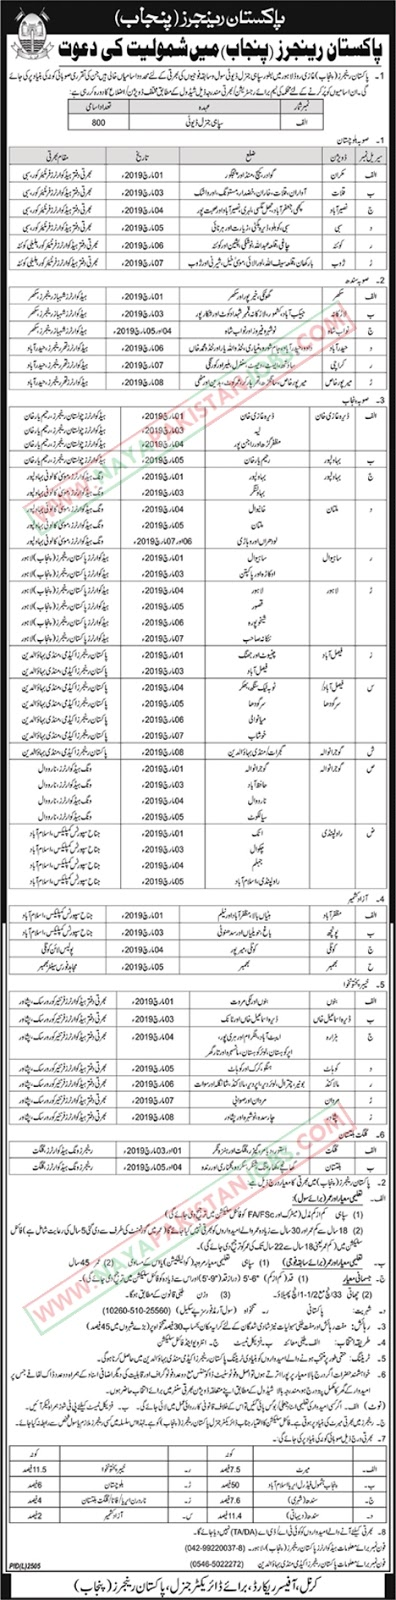 Rangers Jobs 2019, Punjab rangers jobs 2019, pakistan rangers jobs 2019, Pakistan Rangers (Punjab) Jobs 2019 Feb | 800 Vacancies for All Pakistan